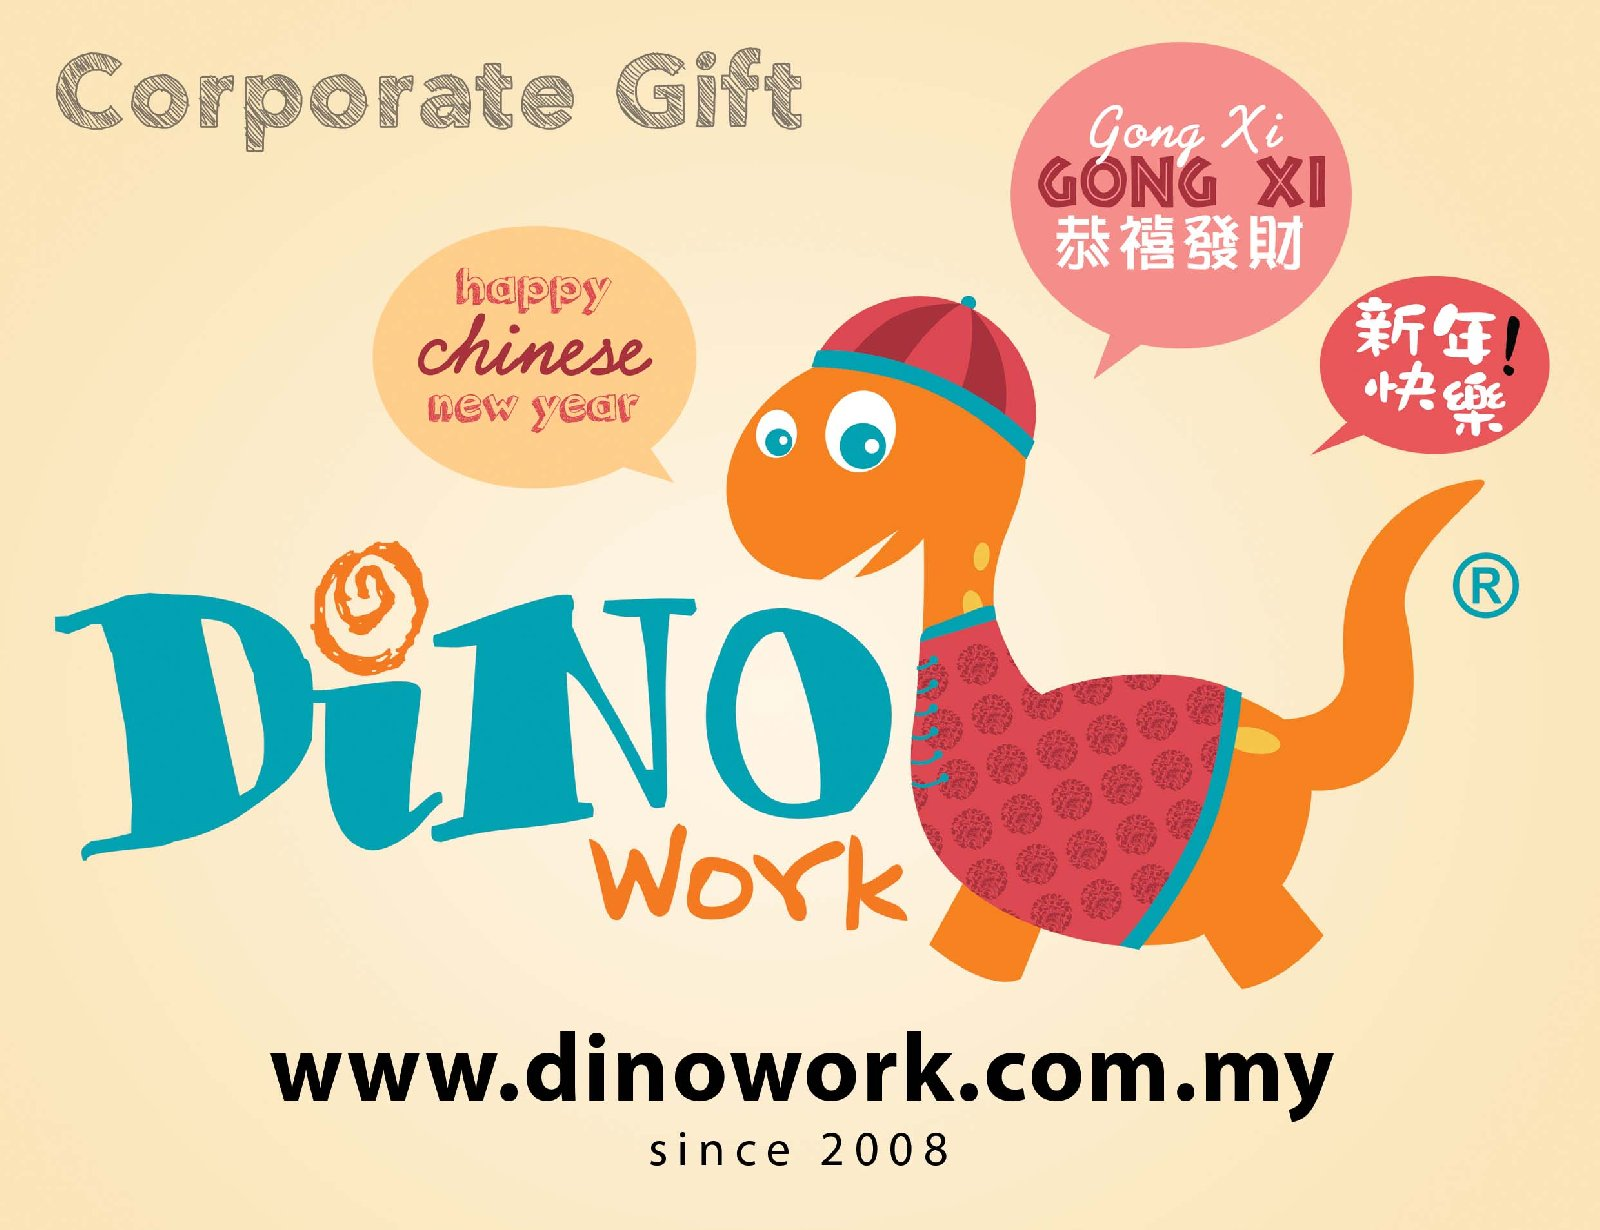 Greeting from DINO WORK SDN BHD